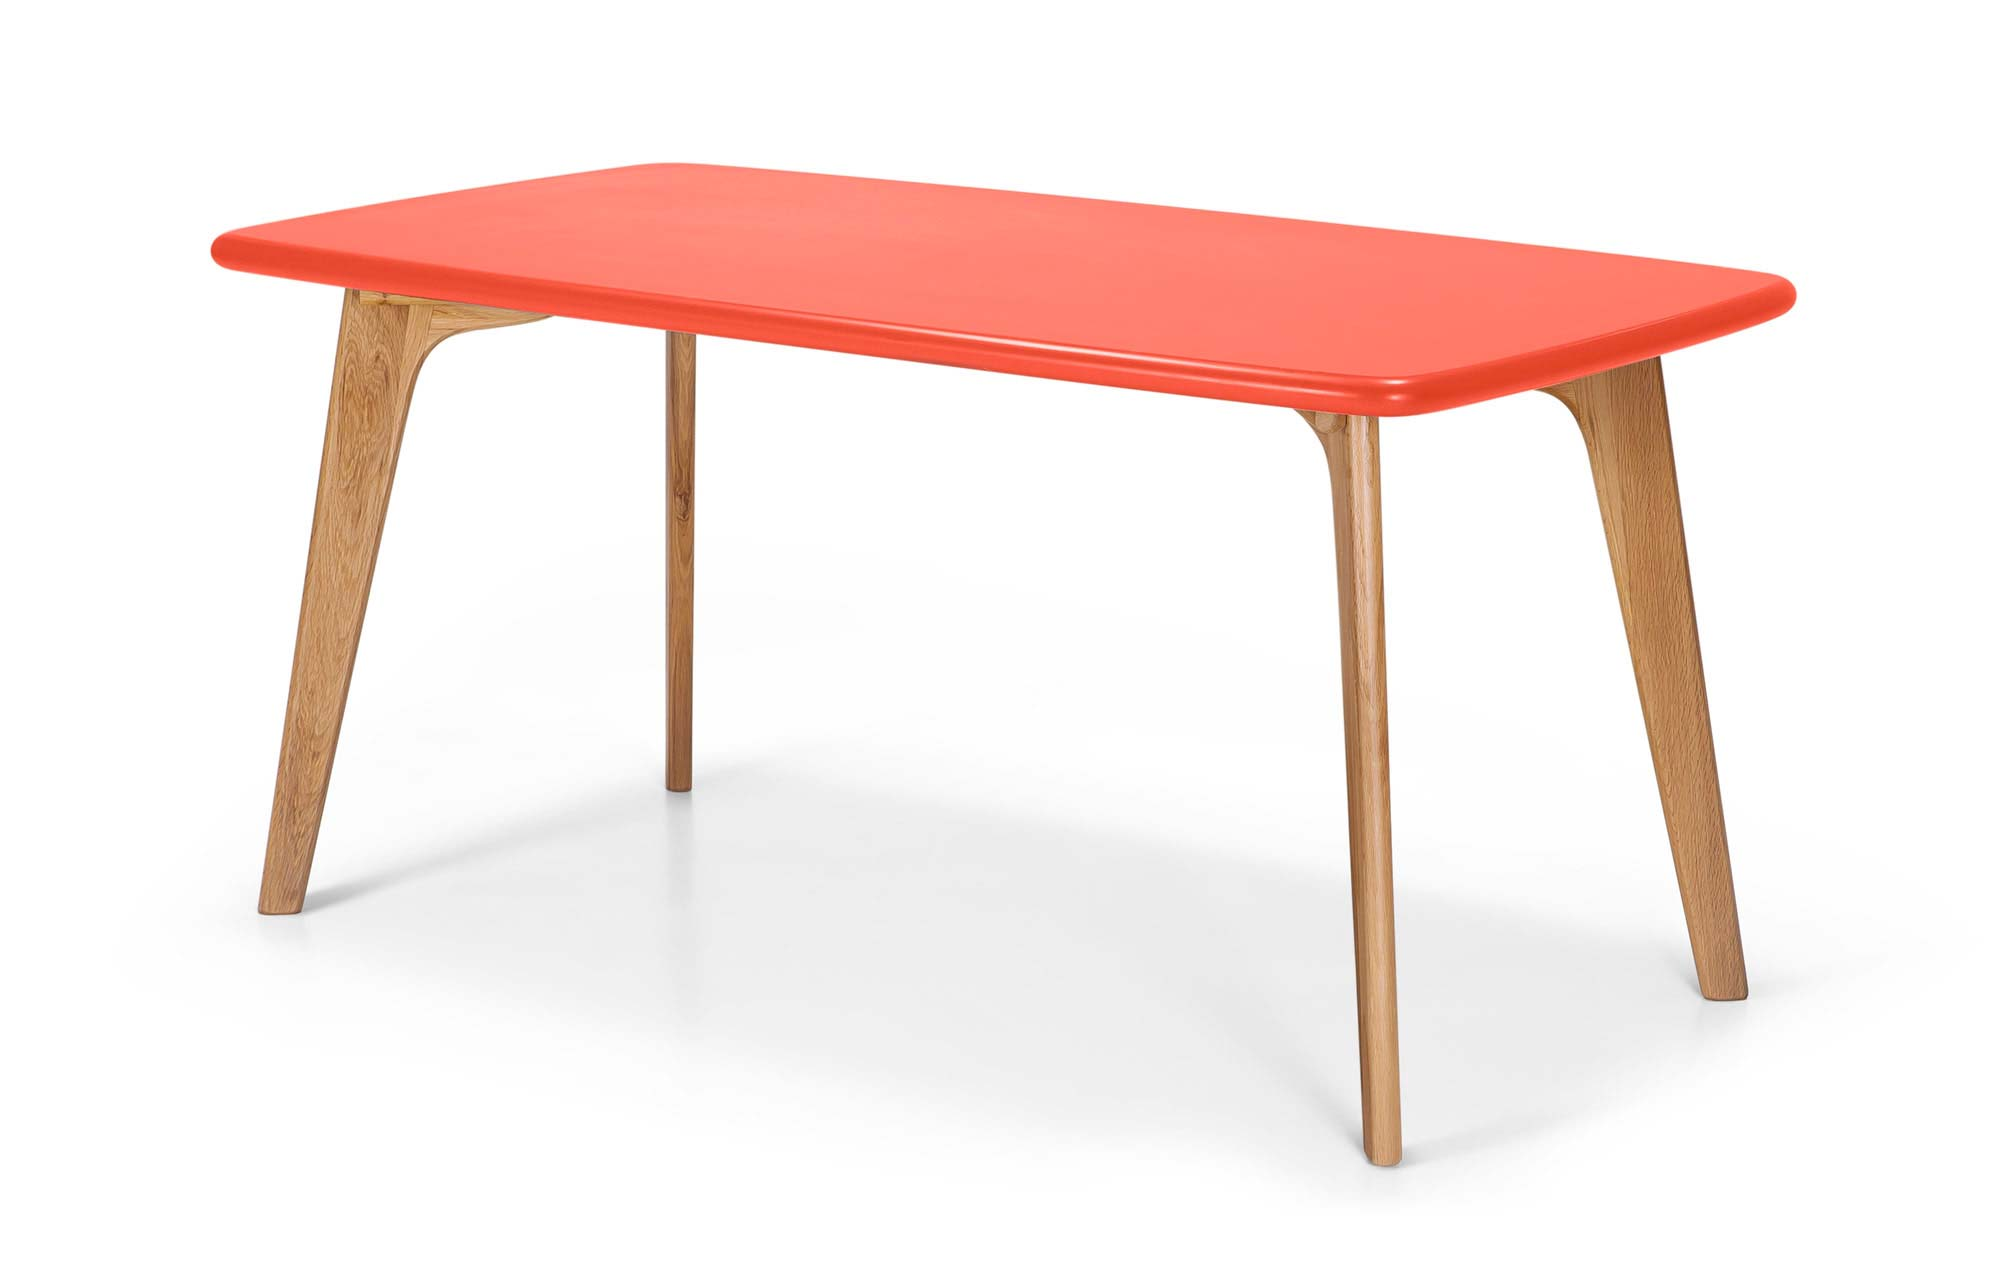 table en ch ne avec plateau orange. Black Bedroom Furniture Sets. Home Design Ideas